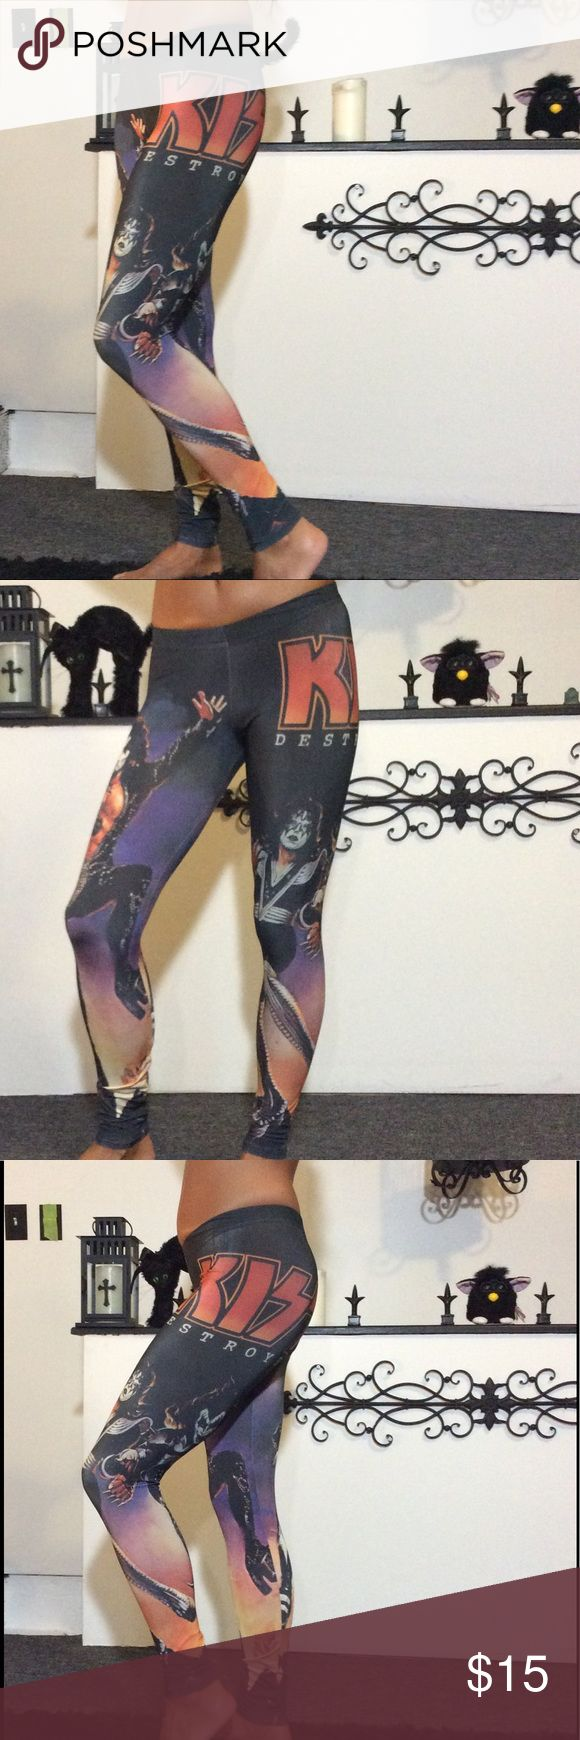 Kiss destroyer leggings small Hot topic brand kiss destroyer leggings size small, wore once in euc, varied deisgn w the band and graphics as shown, tags metal mulisha affliction goth gothic band tee rock revival miss me Hot Topic Pants Leggings